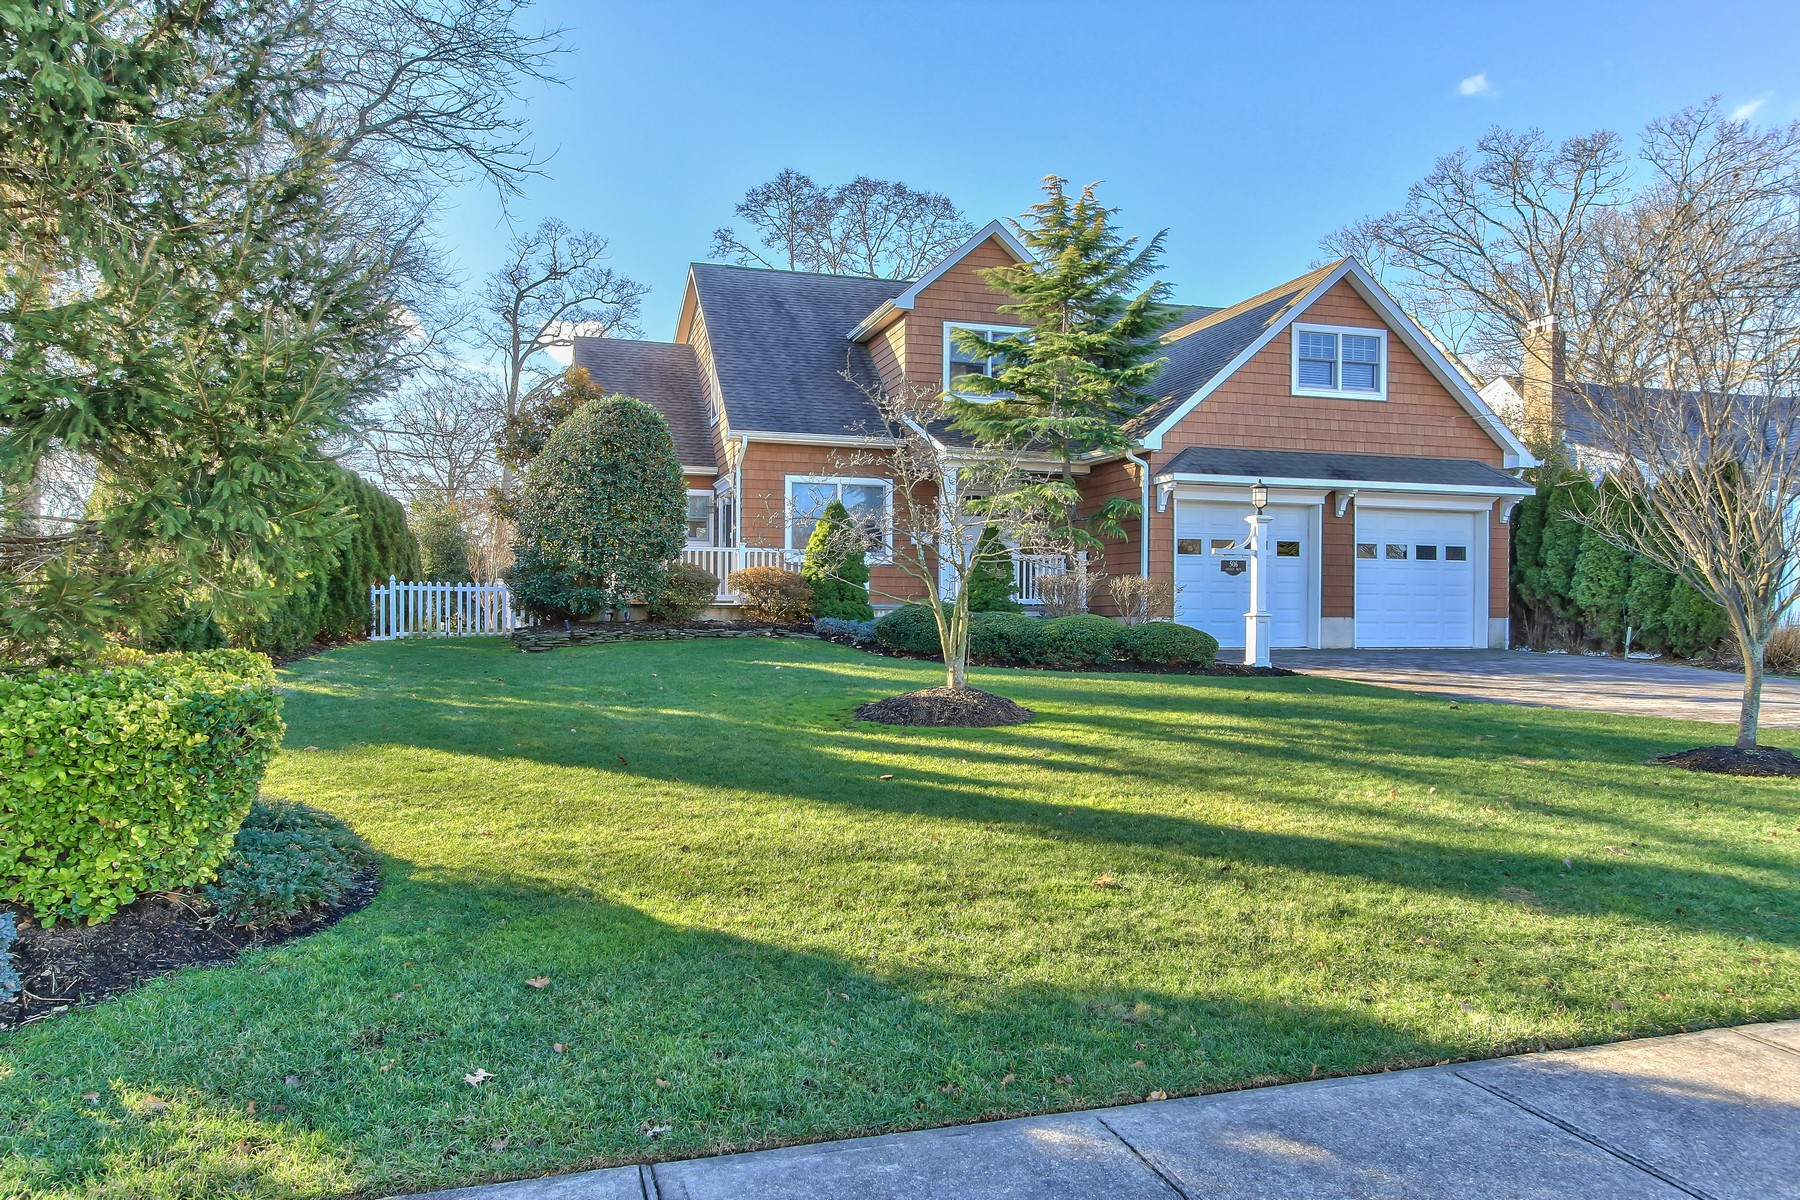 Single Family Home for Sale at Sea Girt Retreat! 506 Chicago Boulevard Sea Girt, New Jersey 08750 United States